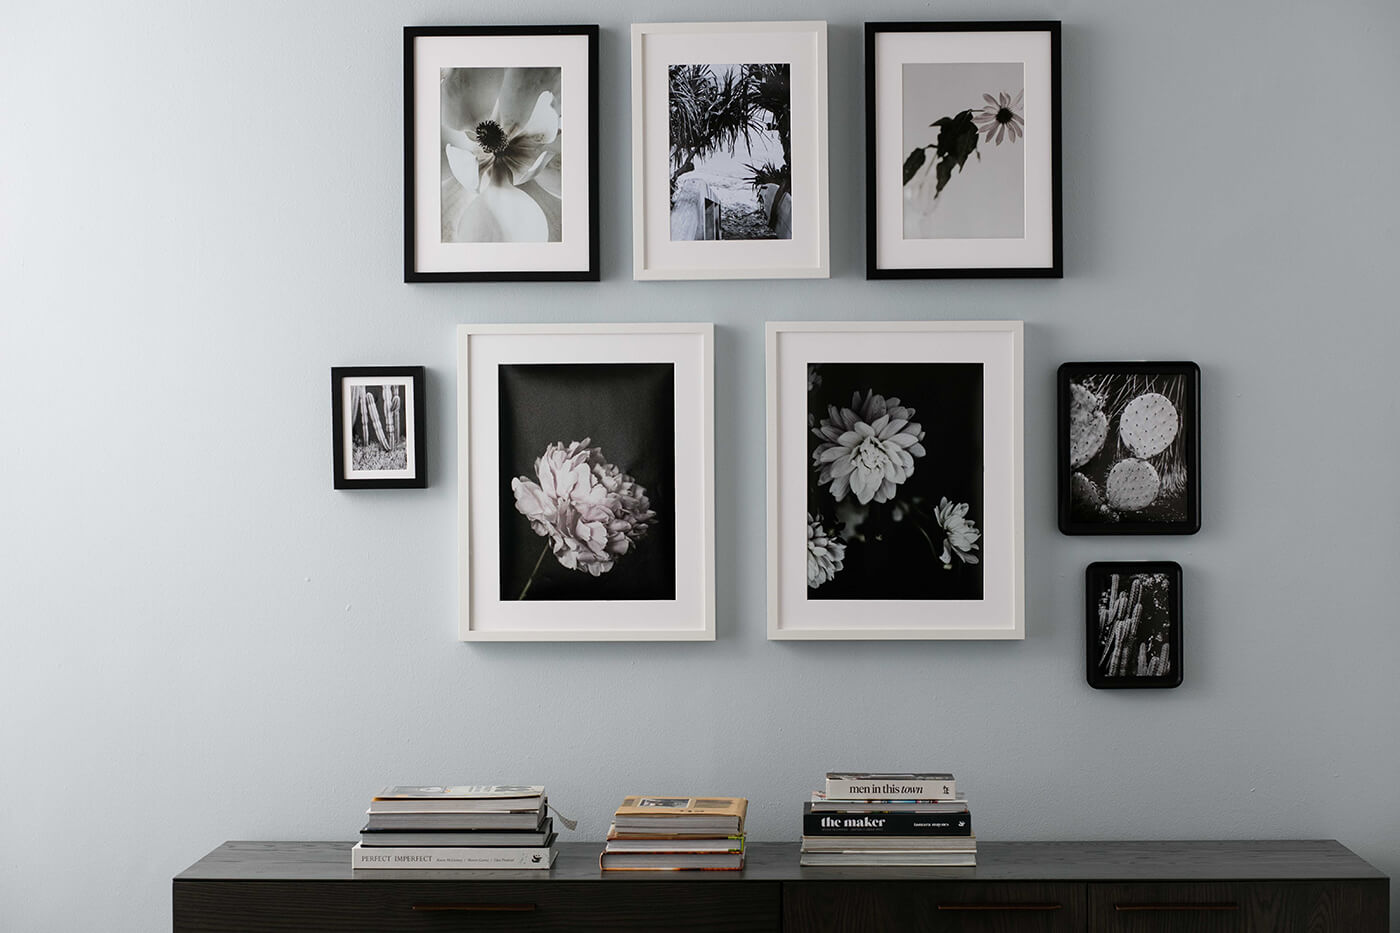 Black and white themed photo display